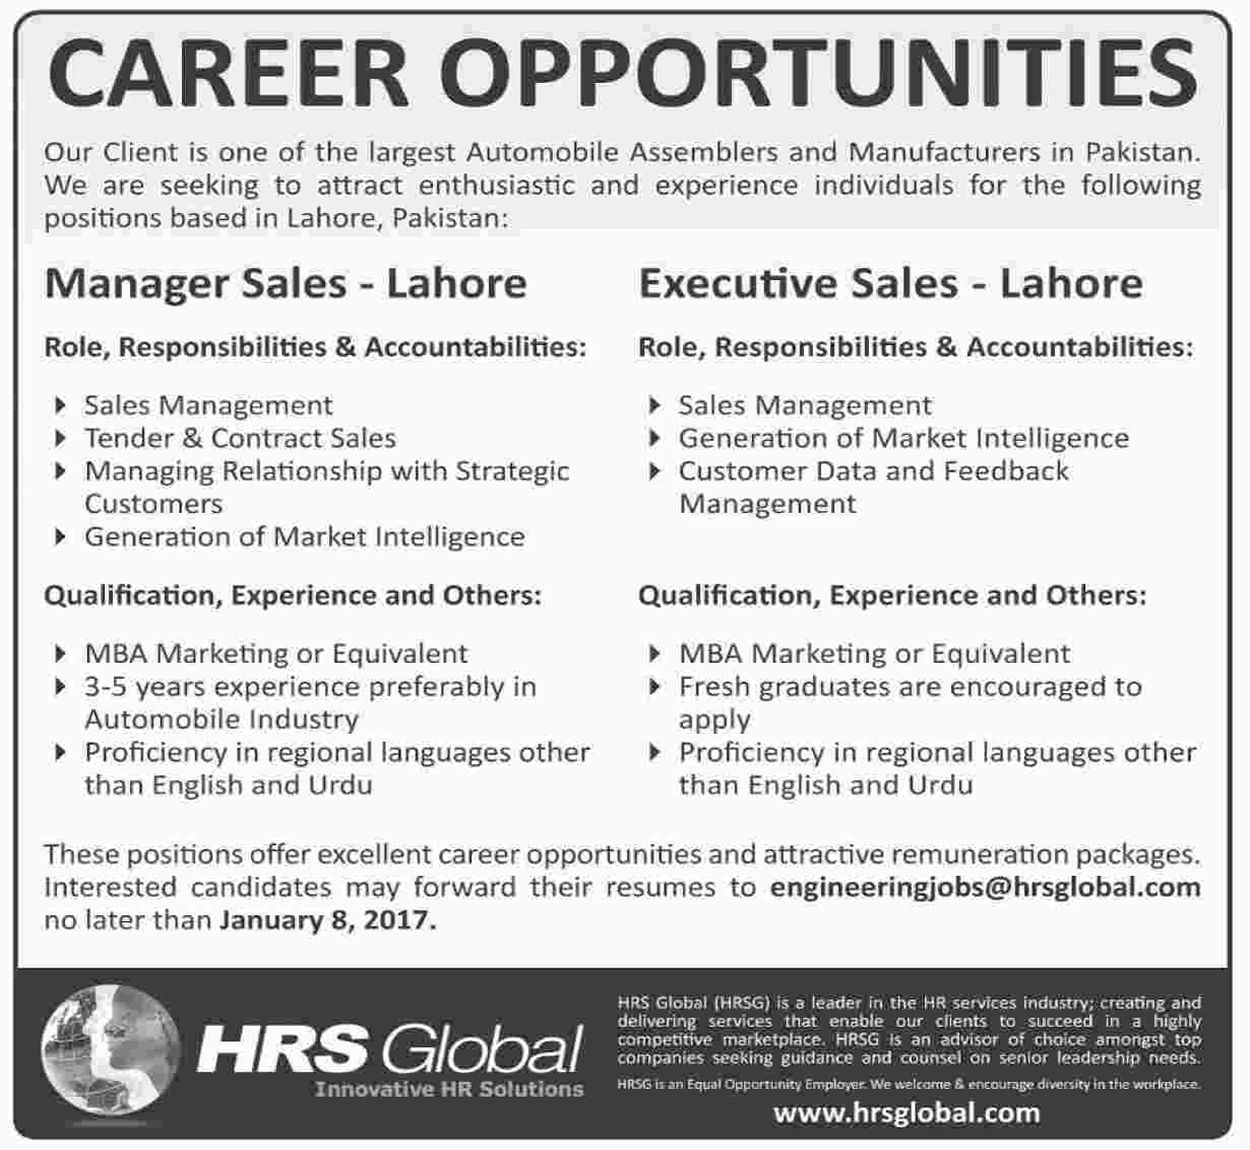 Jobs In HRS Global Lahore Based